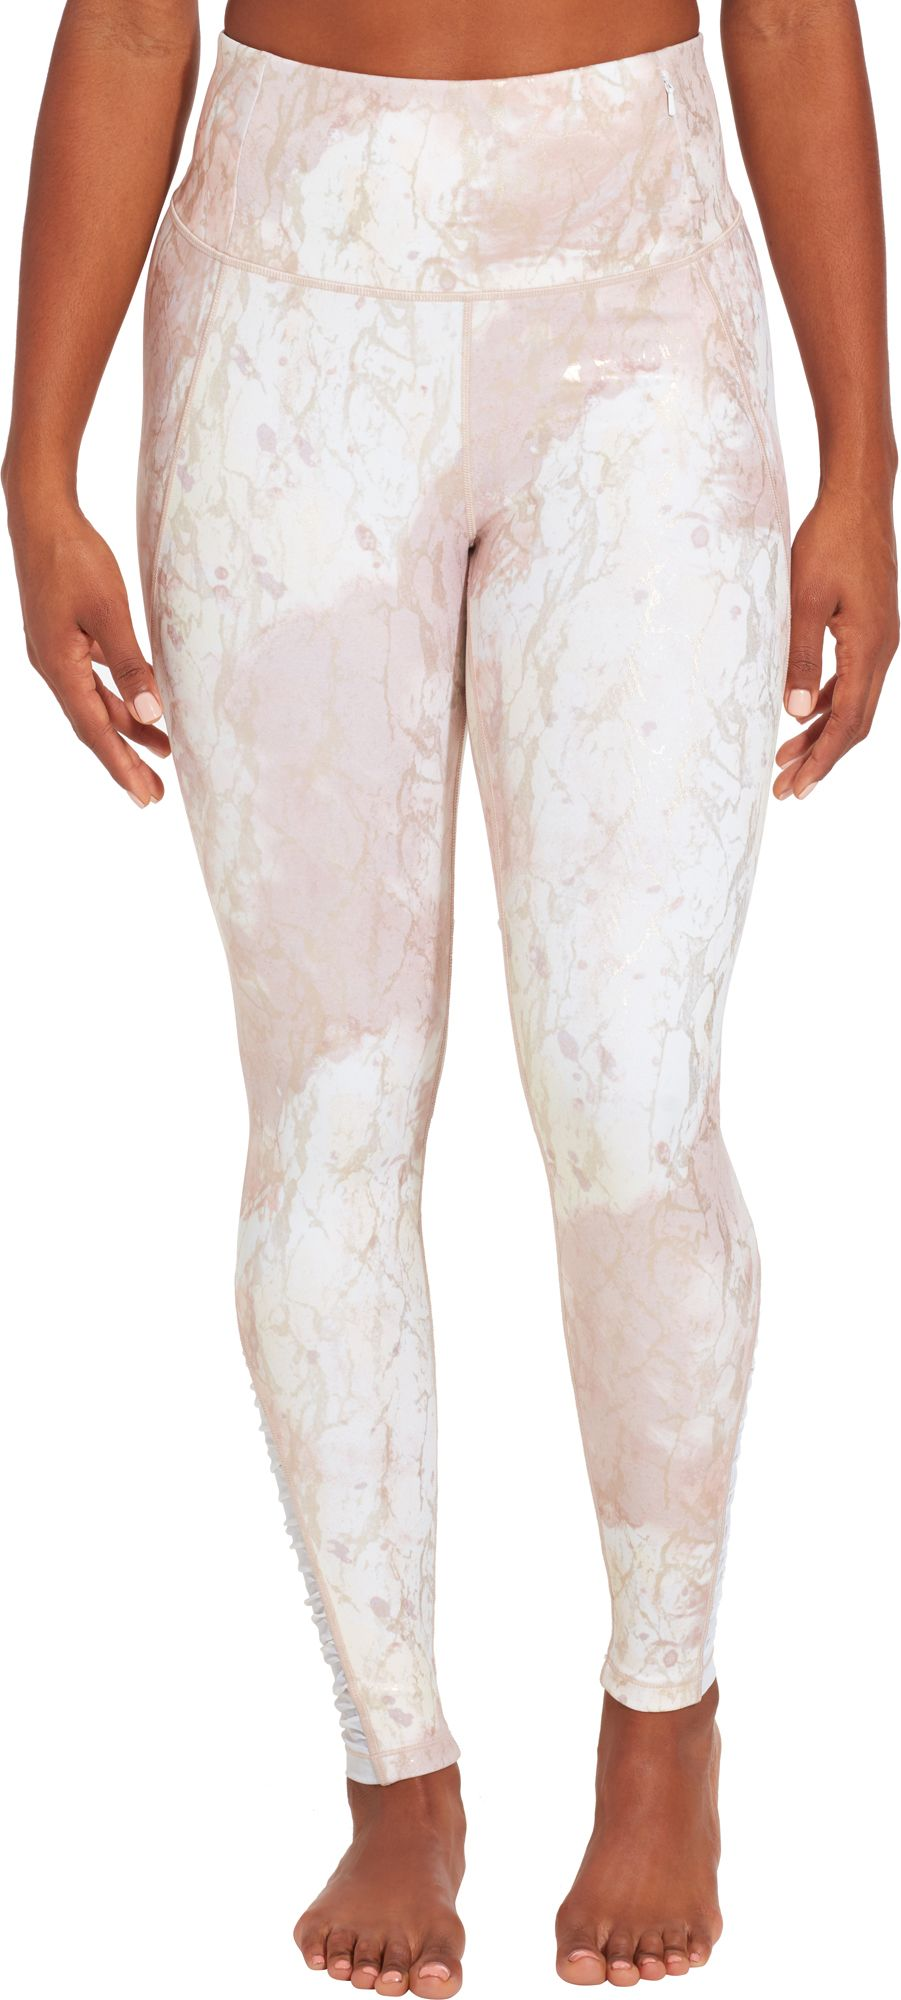 7ec5ea4d8fd2 CALIA by Carrie Underwood Women's Essential Printed High Waist Ruched  Leggings | Fitness Apparel for Your Life.Proposition 65 warning  iconProposition 65 ...